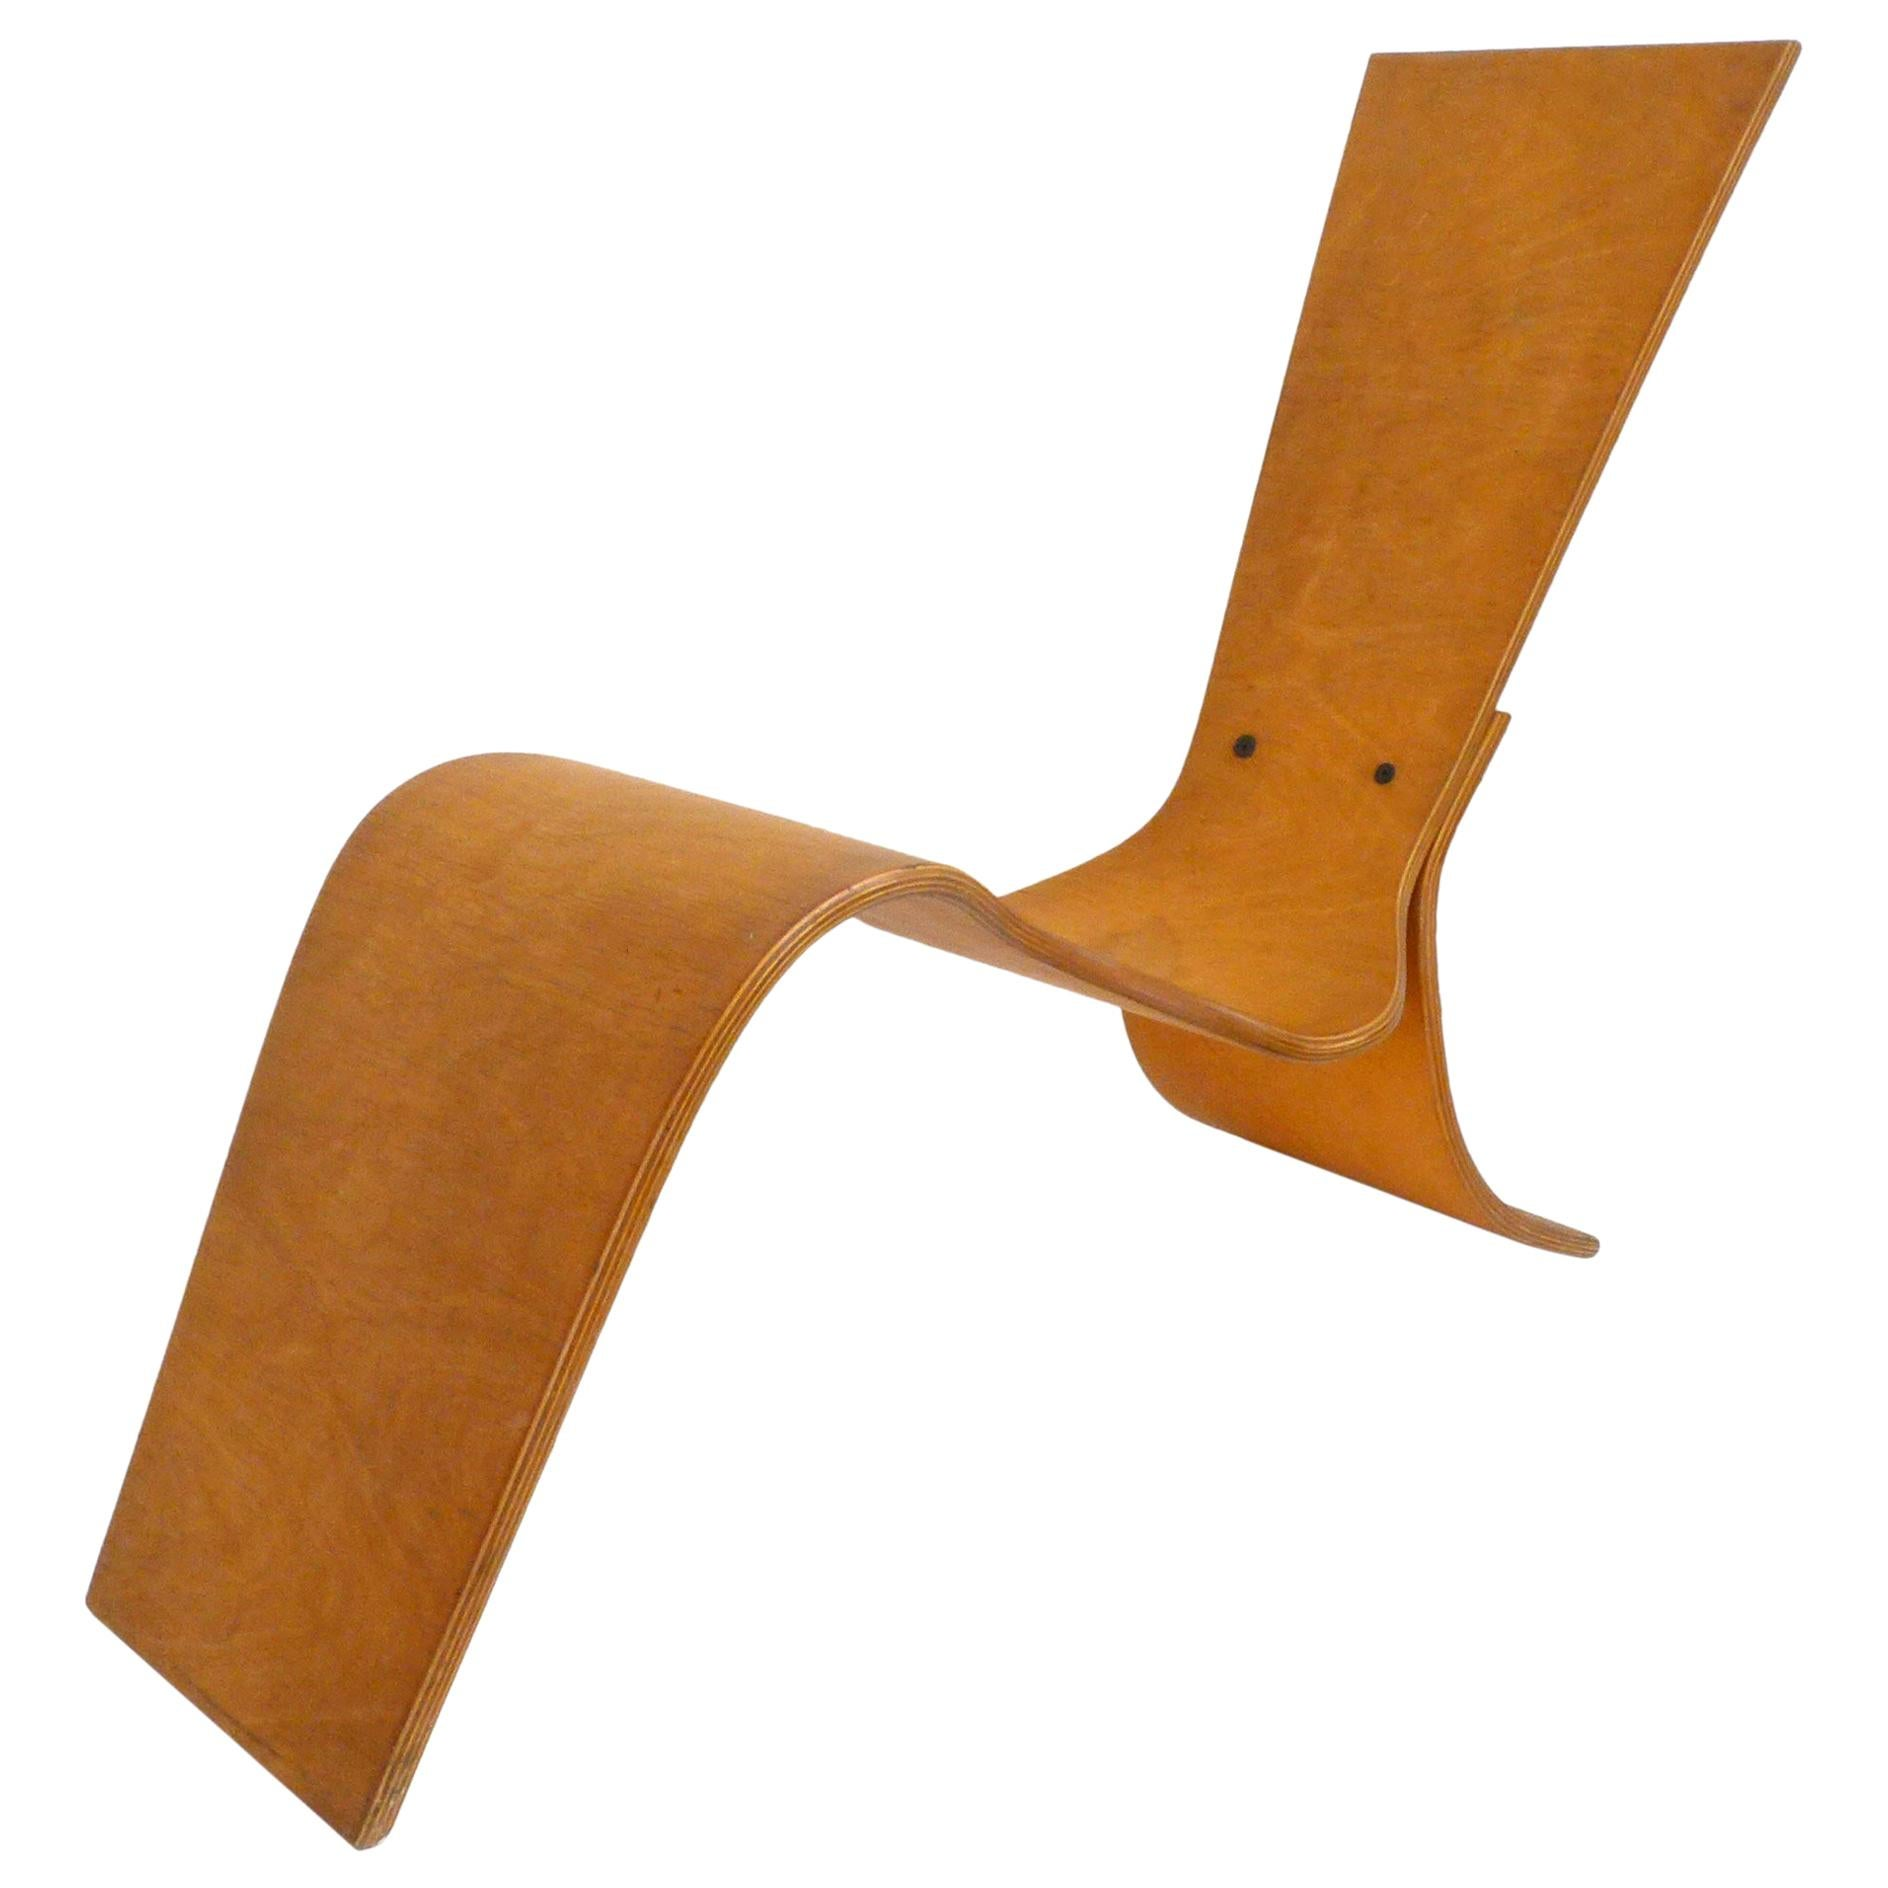 Moulded Plywood Lounge Chair by Lauren Page